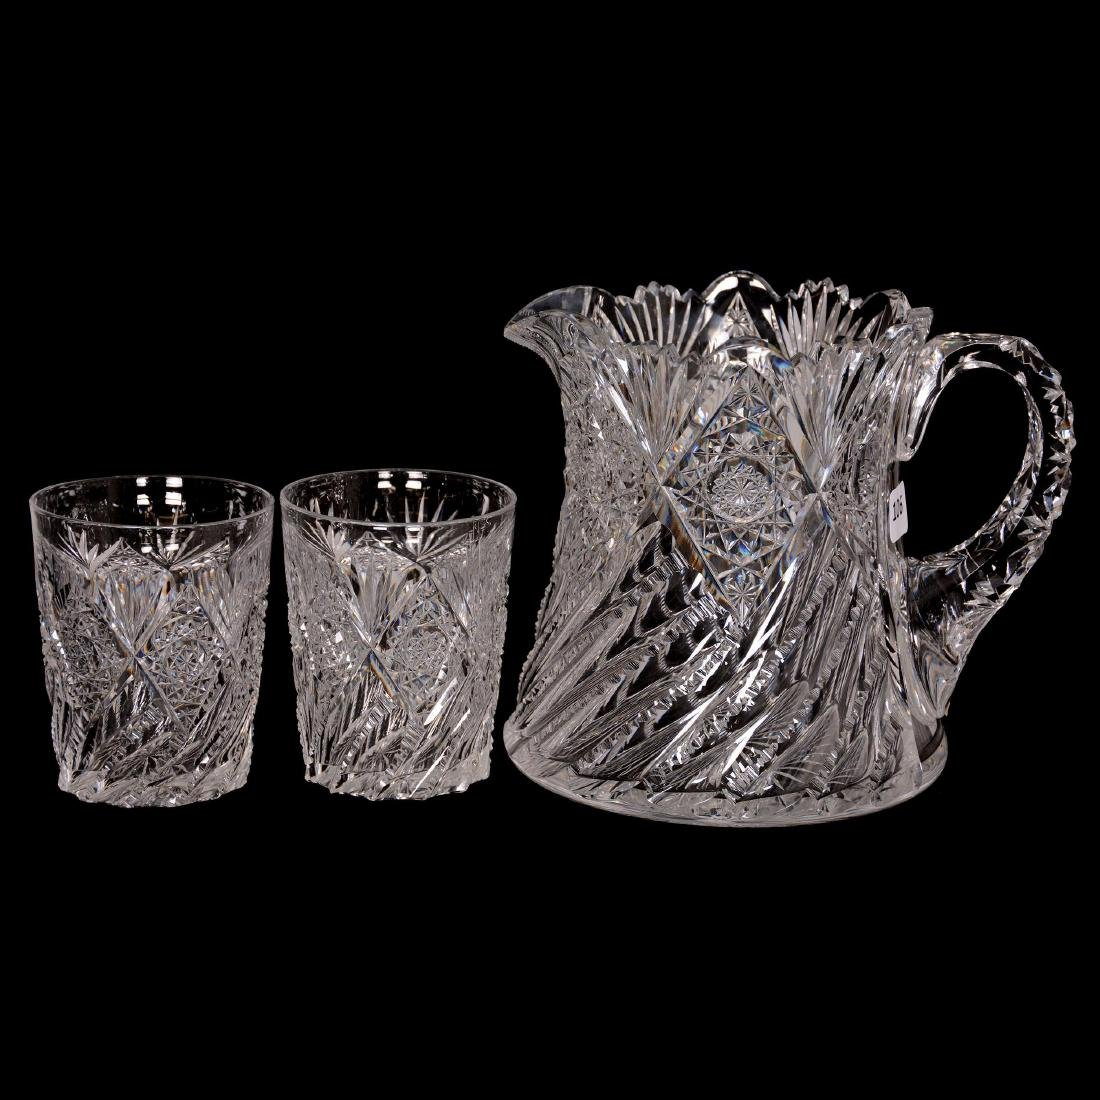 Cider Pitcher and (2) Tumblers - ABCG